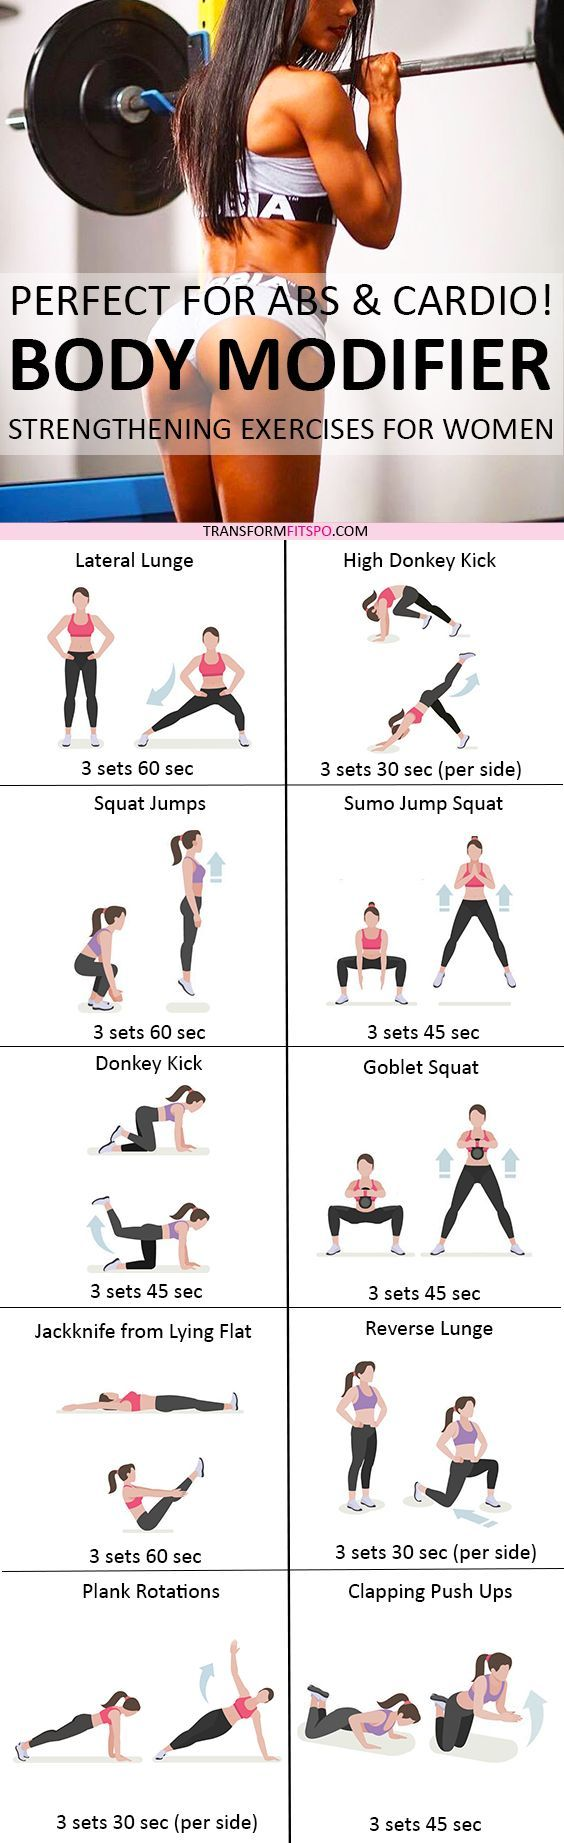 Repin if this hardcore workout transformed your body in rapid time! Read the post for all the information!